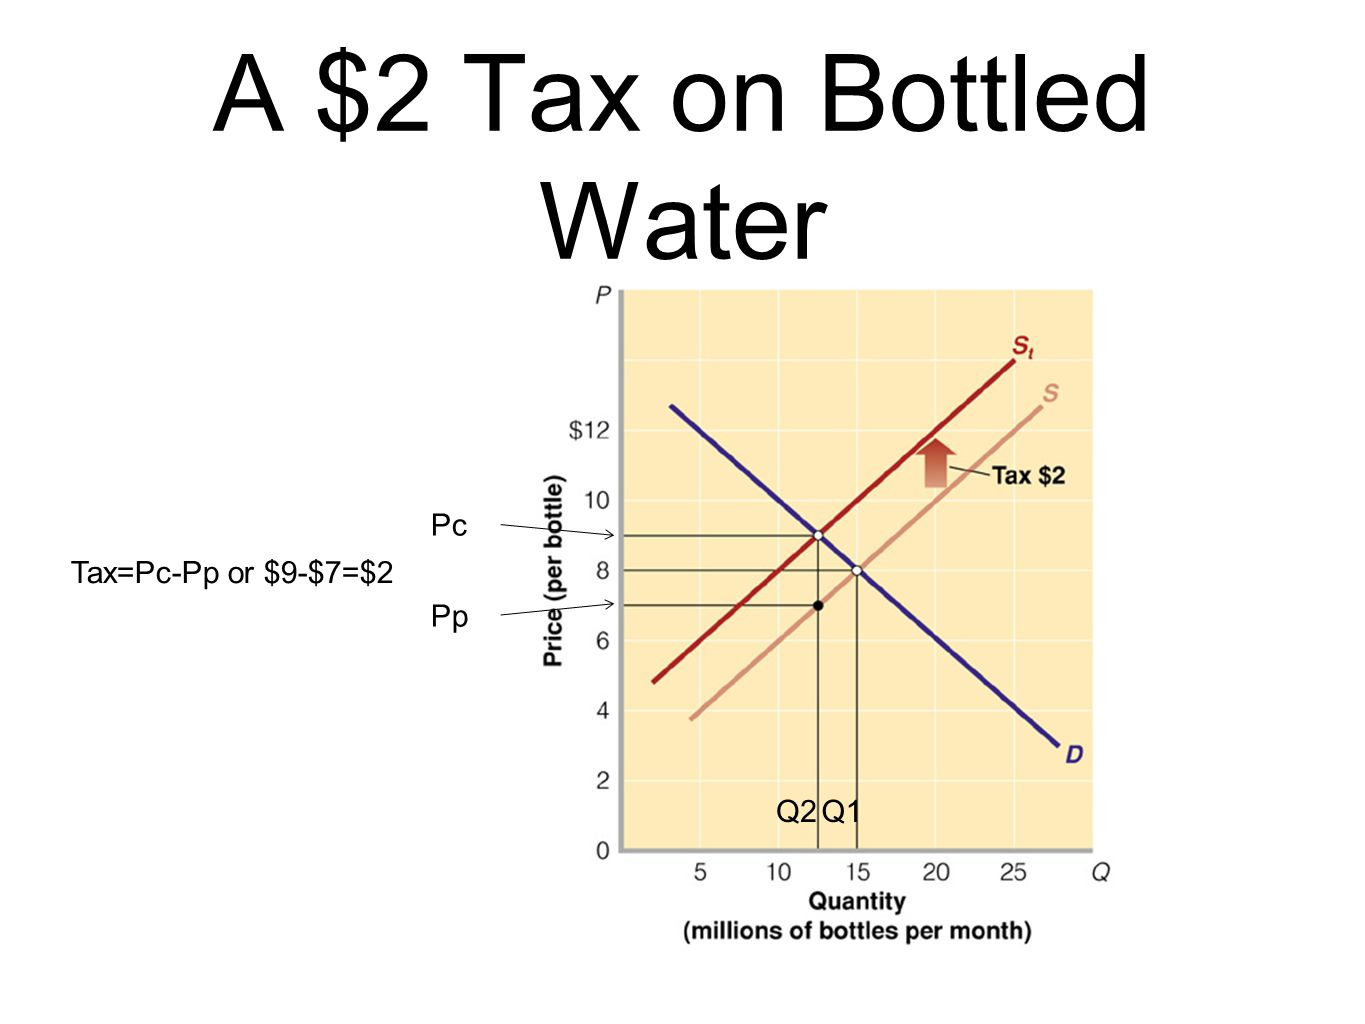 A $2 Tax on Bottled Water Pc Tax=Pc-Pp or $9-$7=$2 Pp Q2 Q1